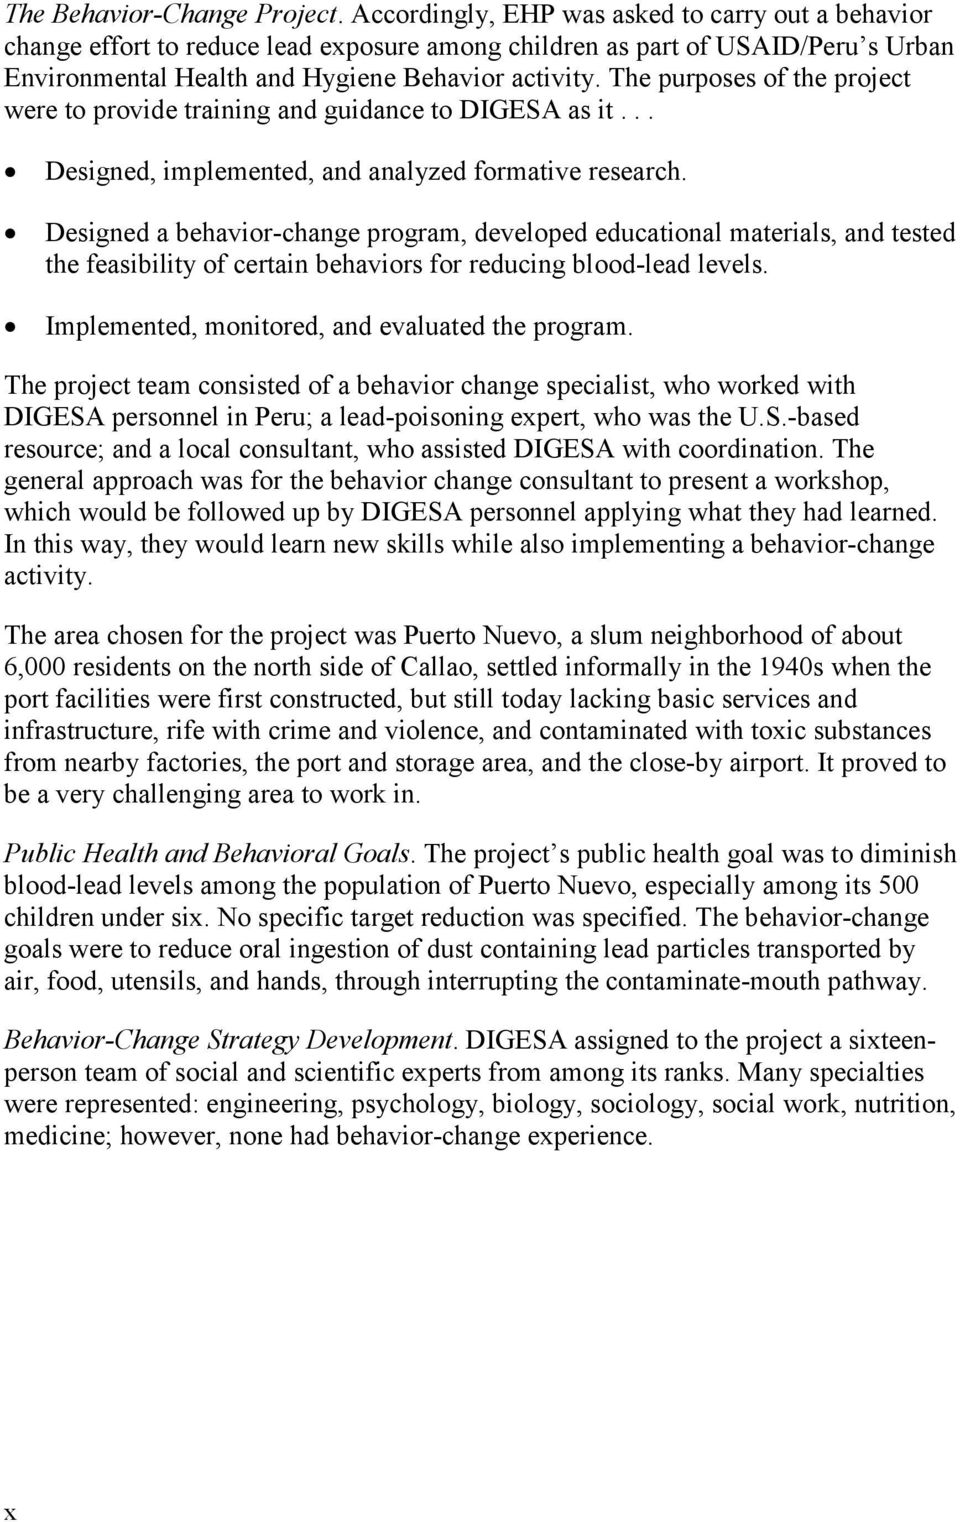 The purposes of the project were to provide training and guidance to DIGESA as it... Designed, implemented, and analyzed formative research.